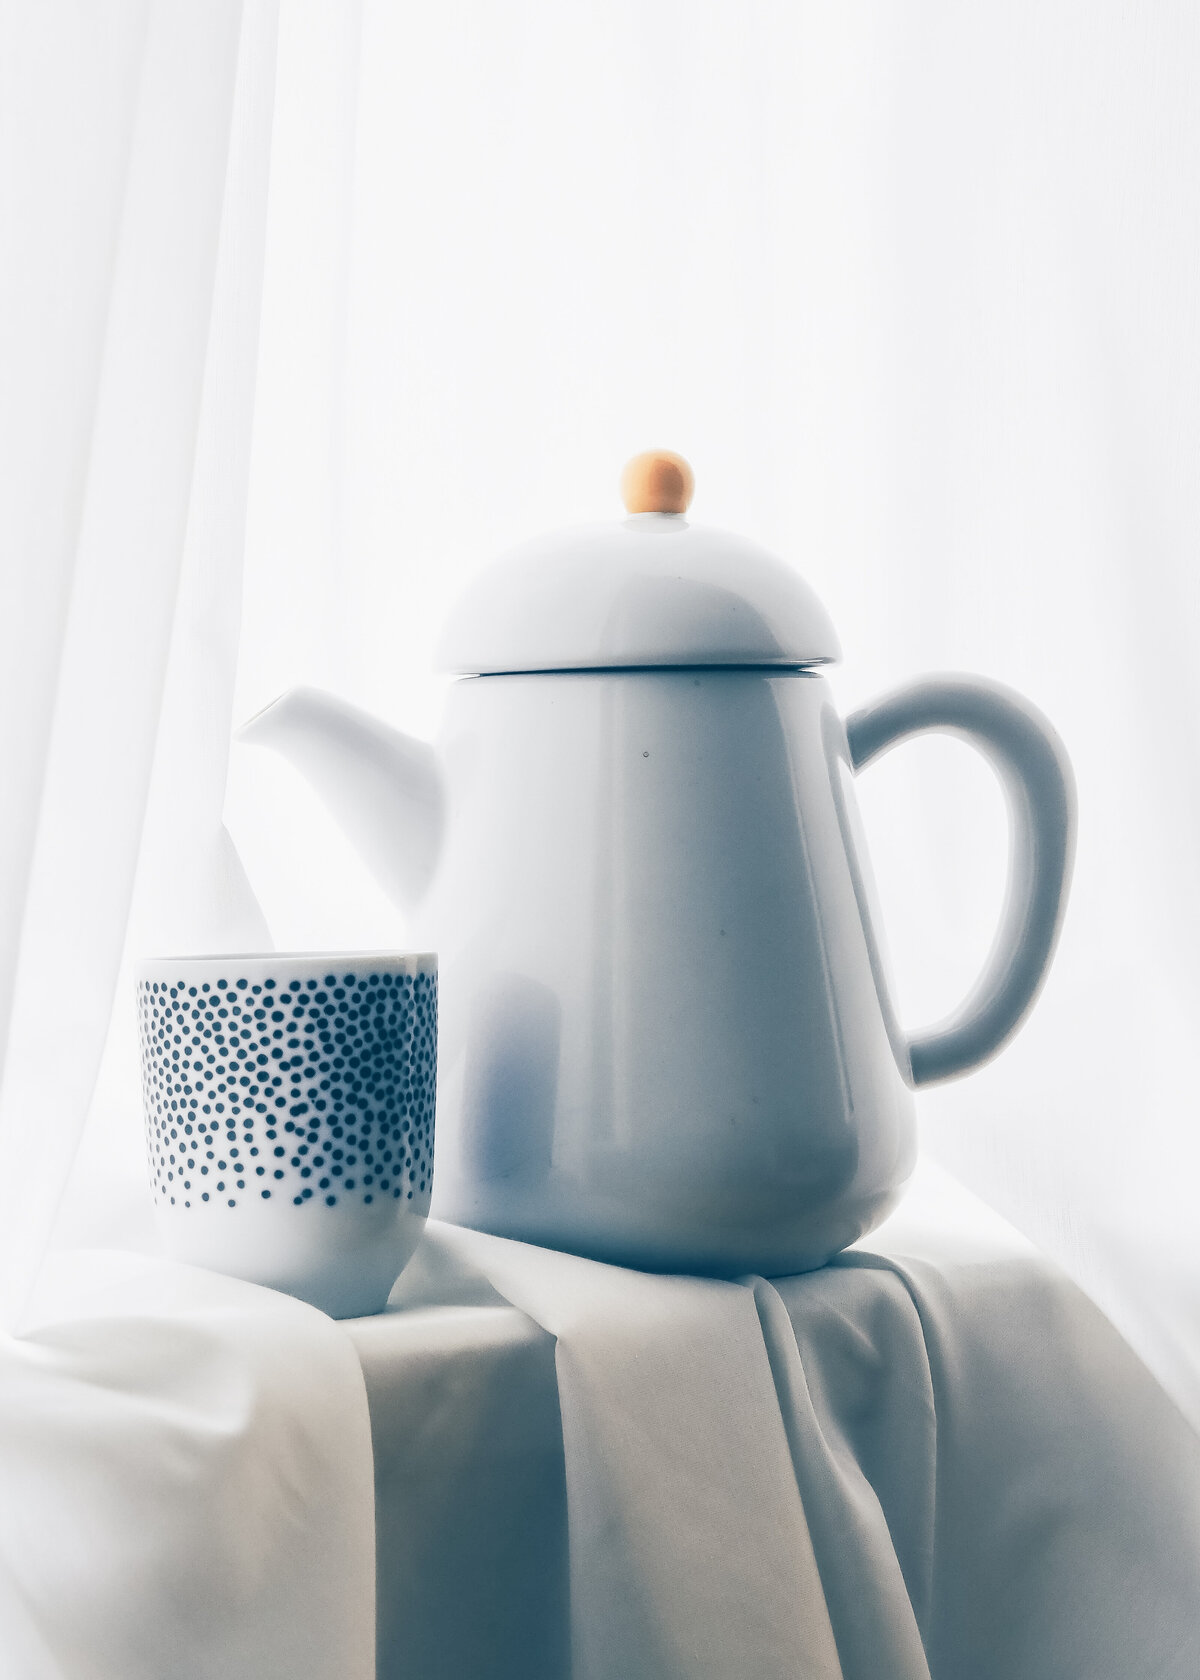 A glossy porcelain teapot is poctured with a dappled blue mug. Interior accent.